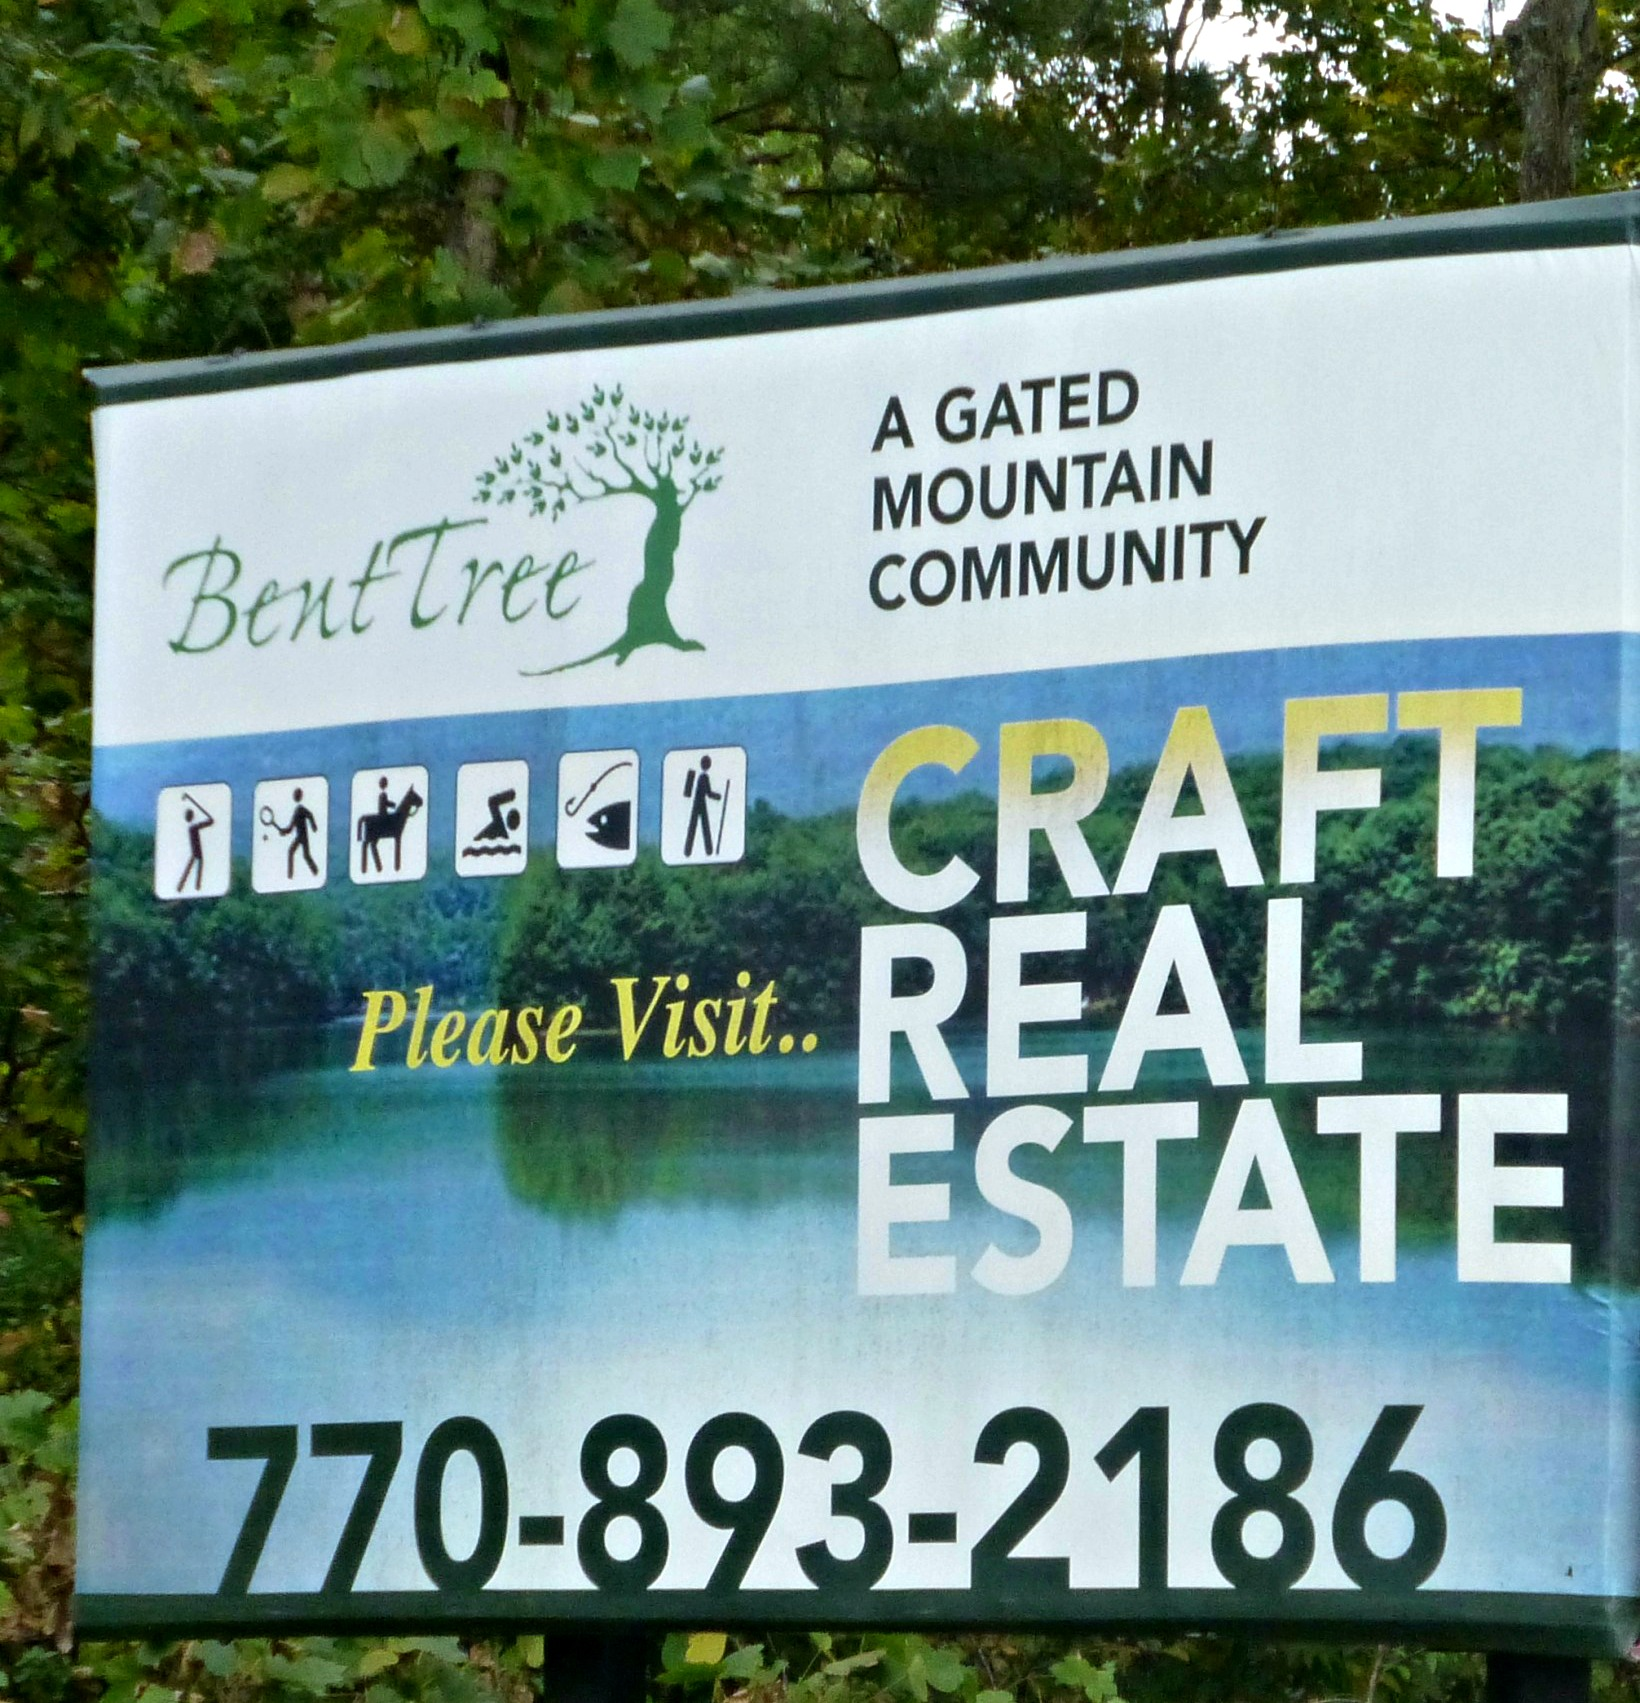 October 7, 2017 - Craft Real Estate billboard